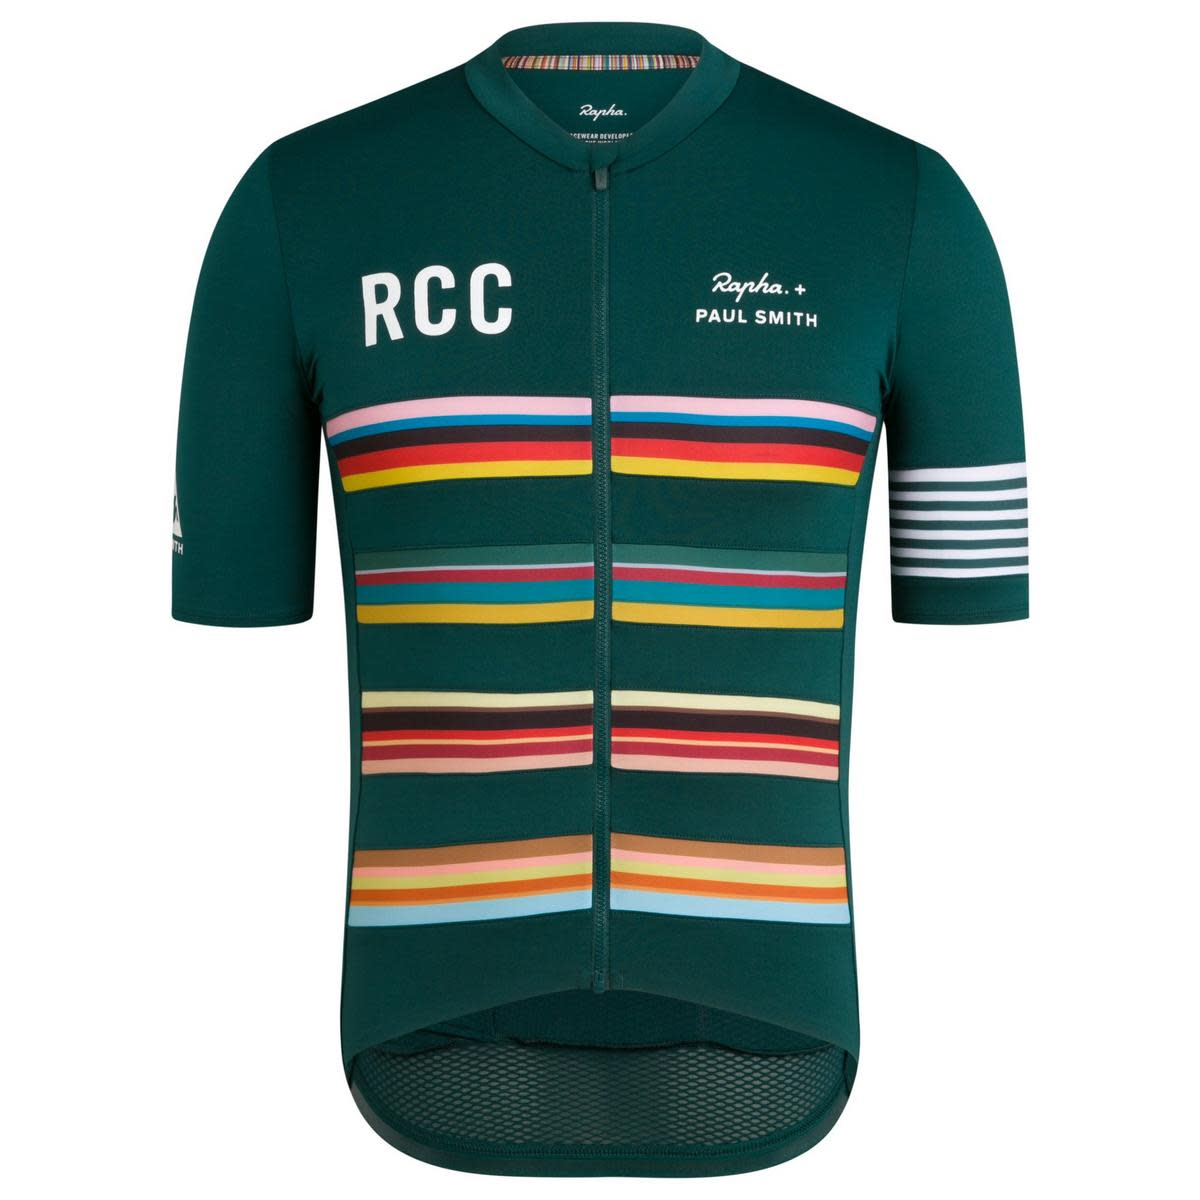 Rapha Cycling Club x Paul Smith